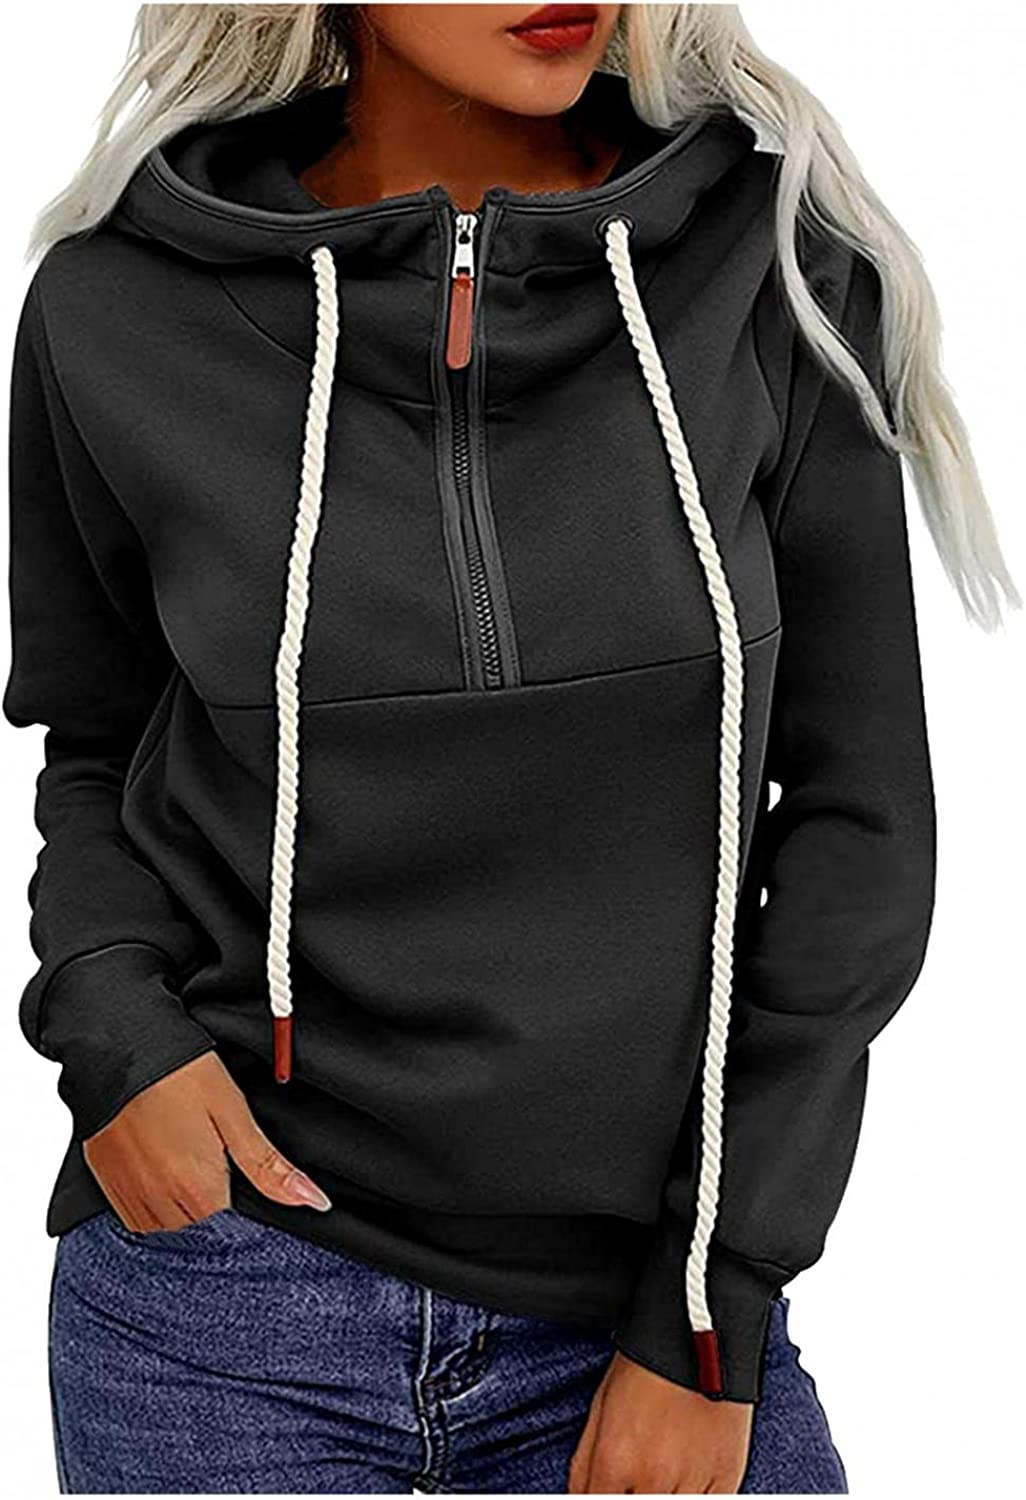 Women's Long Sleeve Half Zip Up Hooded Sweatshirt Solid Stylish Loose Fit Casual Pullover Tunic Tops Hoodies